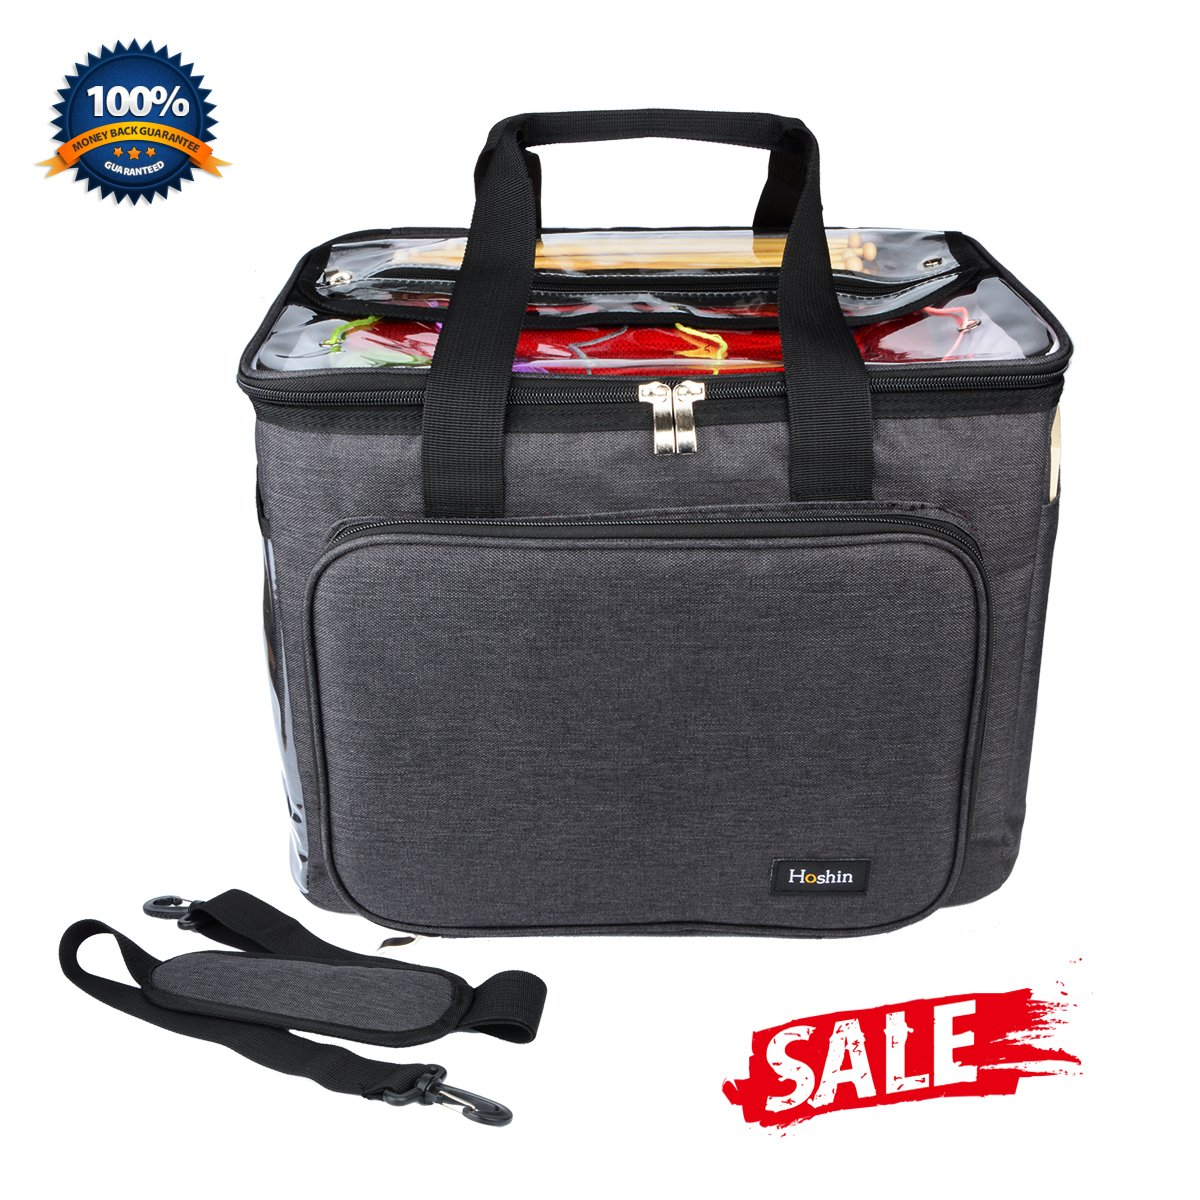 Hoshin Knitting Bag for Yarn Storage, High Capacity Yarn Totes Organizer with Inner Divider Portable for Carrying Project, Knitting Needles(up to 14''), Crochet Hooks, Skeins of Yarn (Black) by Hoshin (Image #1)